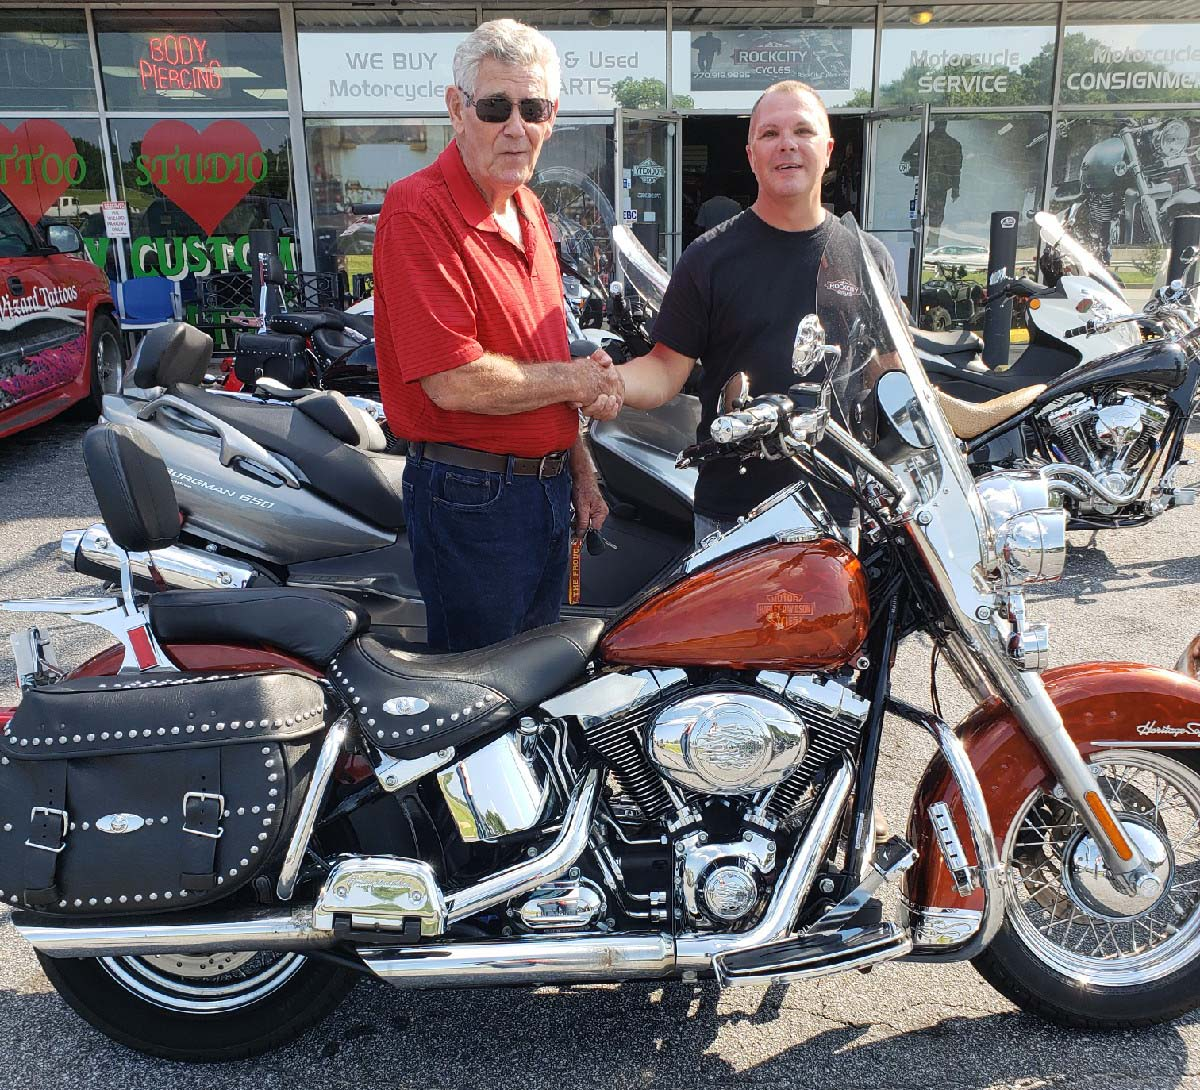 Morris K. with his 2008 Harley-Davidson Heritage Softail Classic